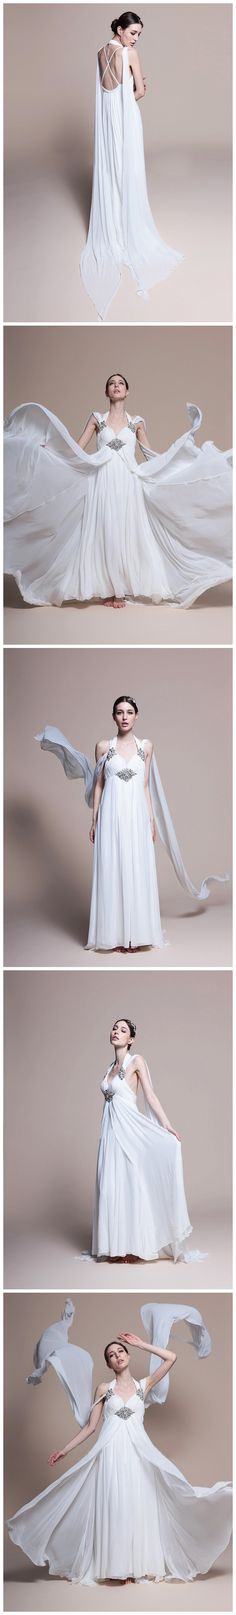 Flowly Halter Neck  Empire Waist Chiffon Wedding Dress